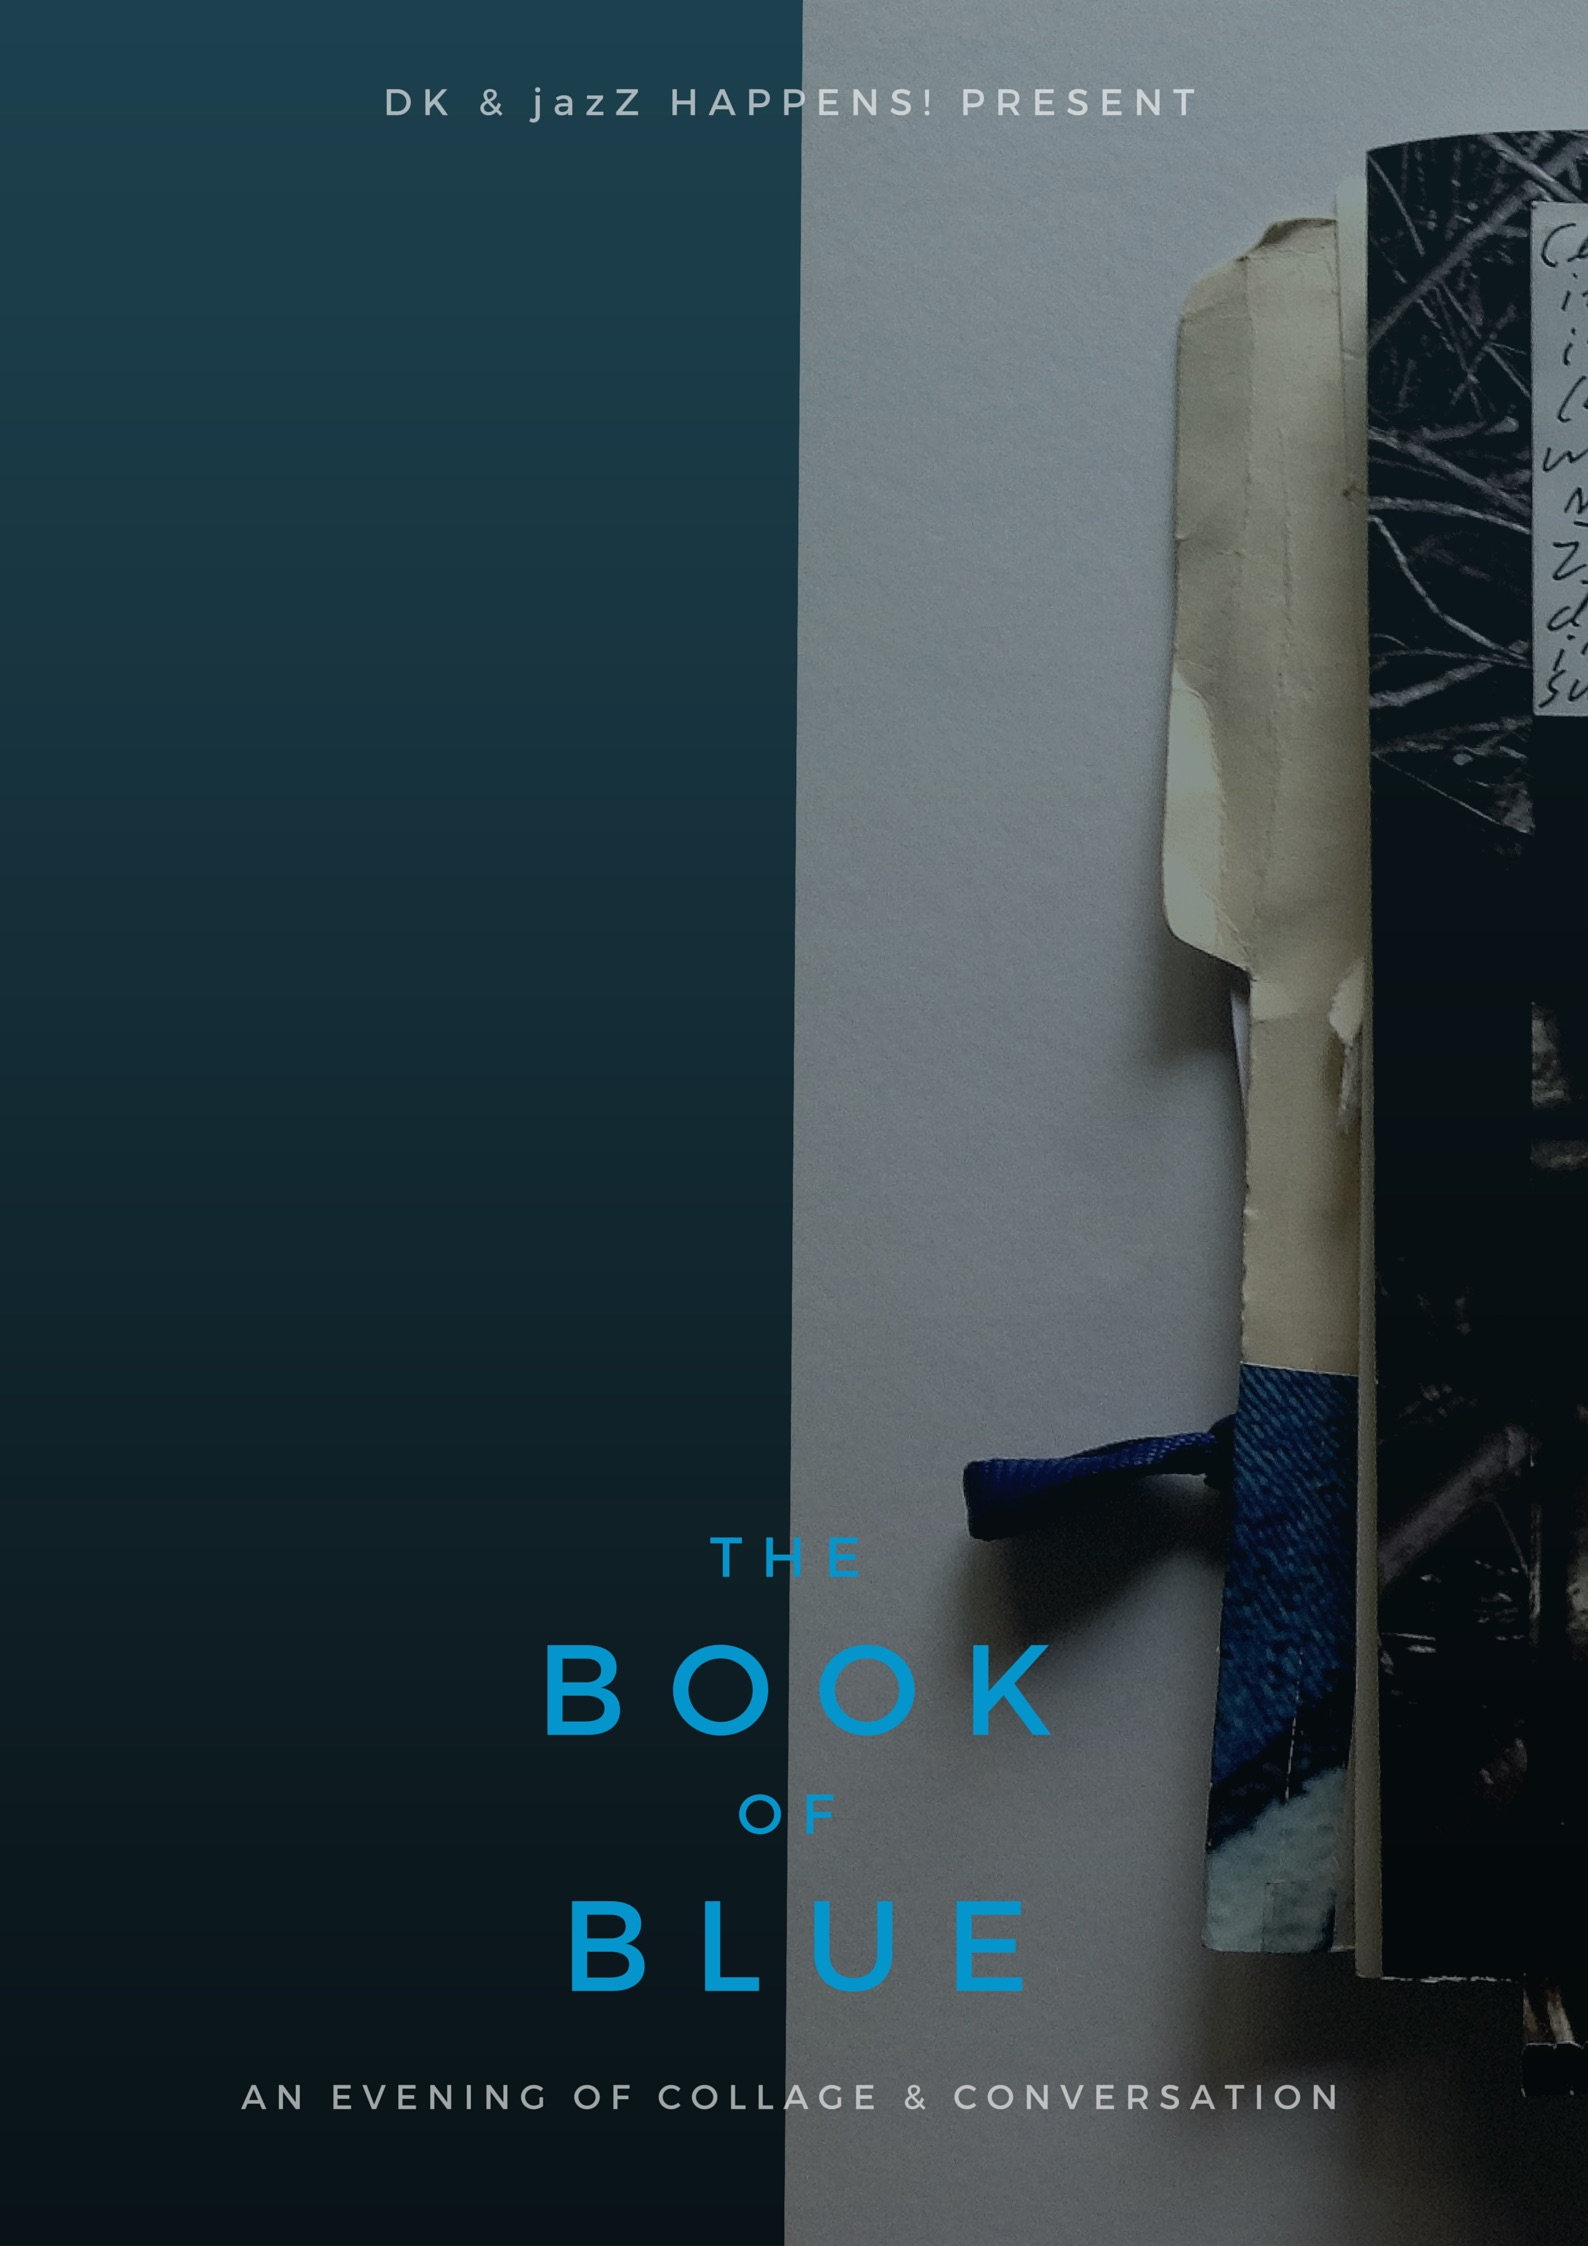 This Friday, DK and jazZ happens! present 'The Book of Blue'